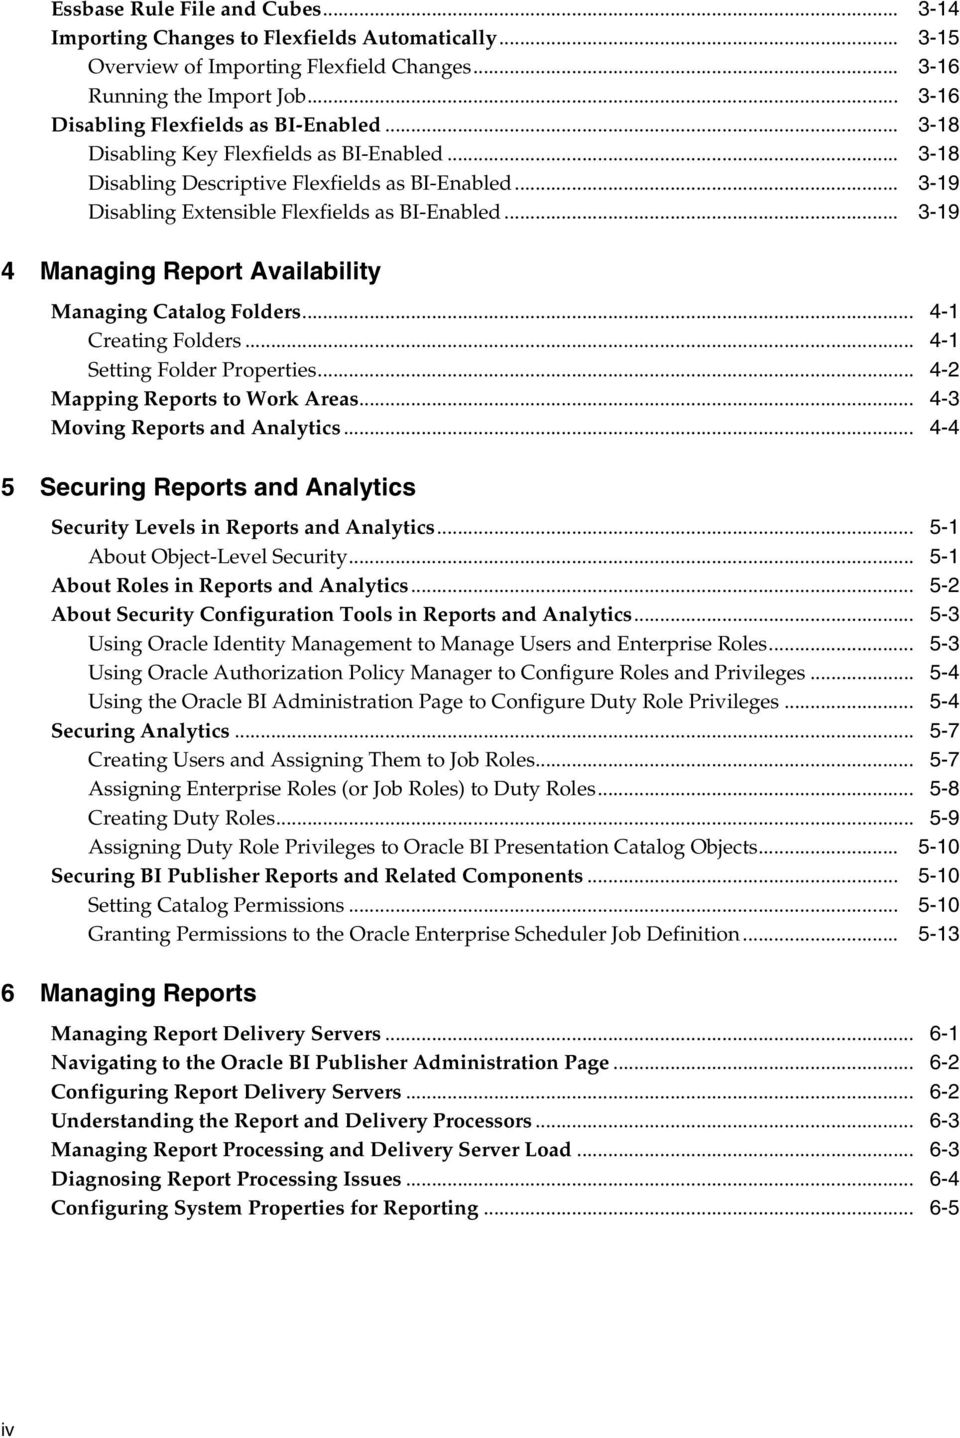 .. 3-19 4 Managing Report Availability Managing Catalog Folders... 4-1 Creating Folders... 4-1 Setting Folder Properties... 4-2 Mapping Reports to Work Areas... 4-3 Moving Reports and Analytics.